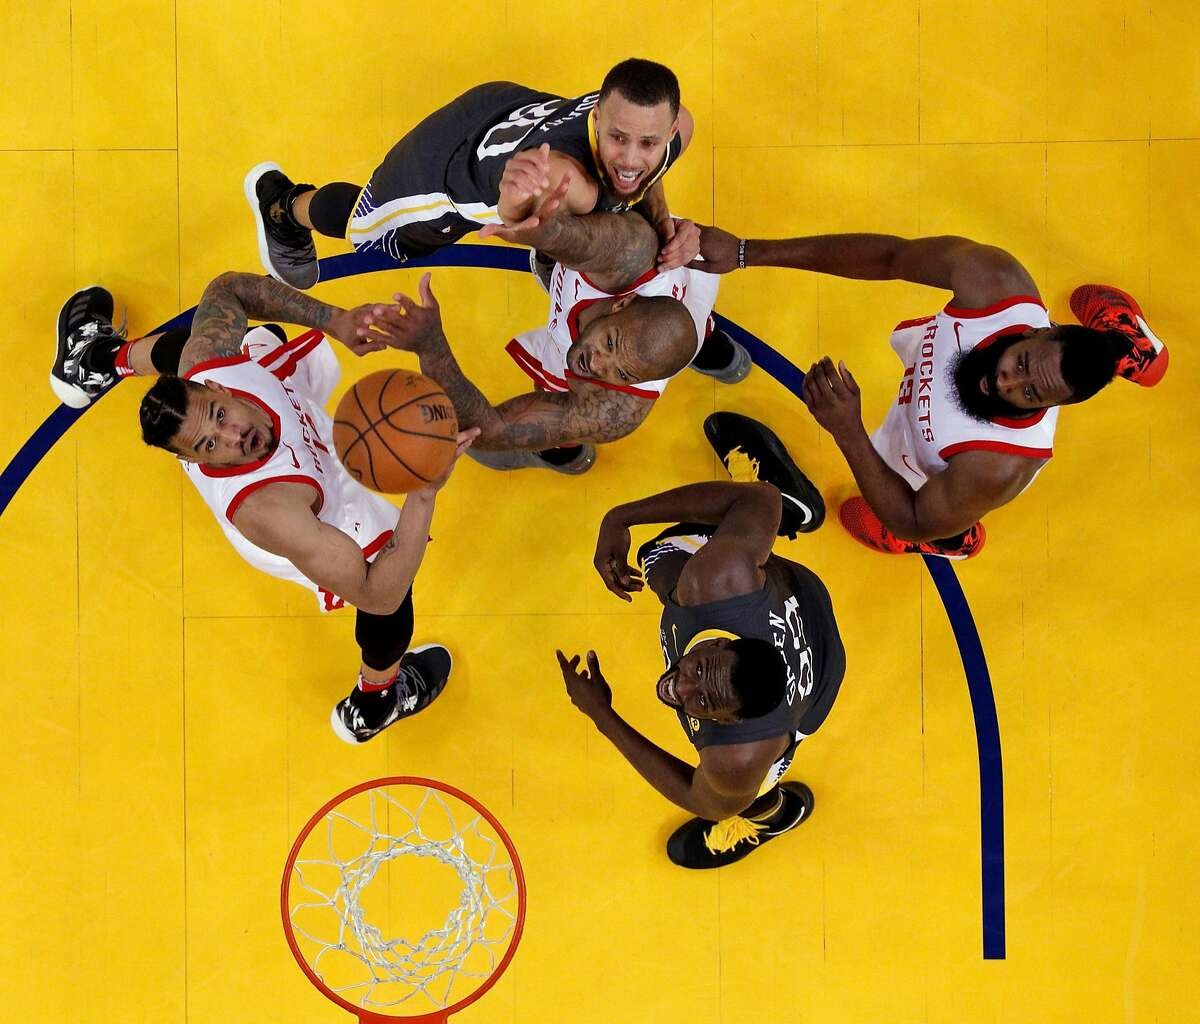 Players watch as Stephen Curry's (30) shot goes toward the basket in the first half as the Golden State Warriors played the Houston Rockets in Game 4 of the Western Conference Finals at Oracle Arena in Oakland, Calif., on Tuesday, May 22, 2018. Houston defeated the Warriors 95-92